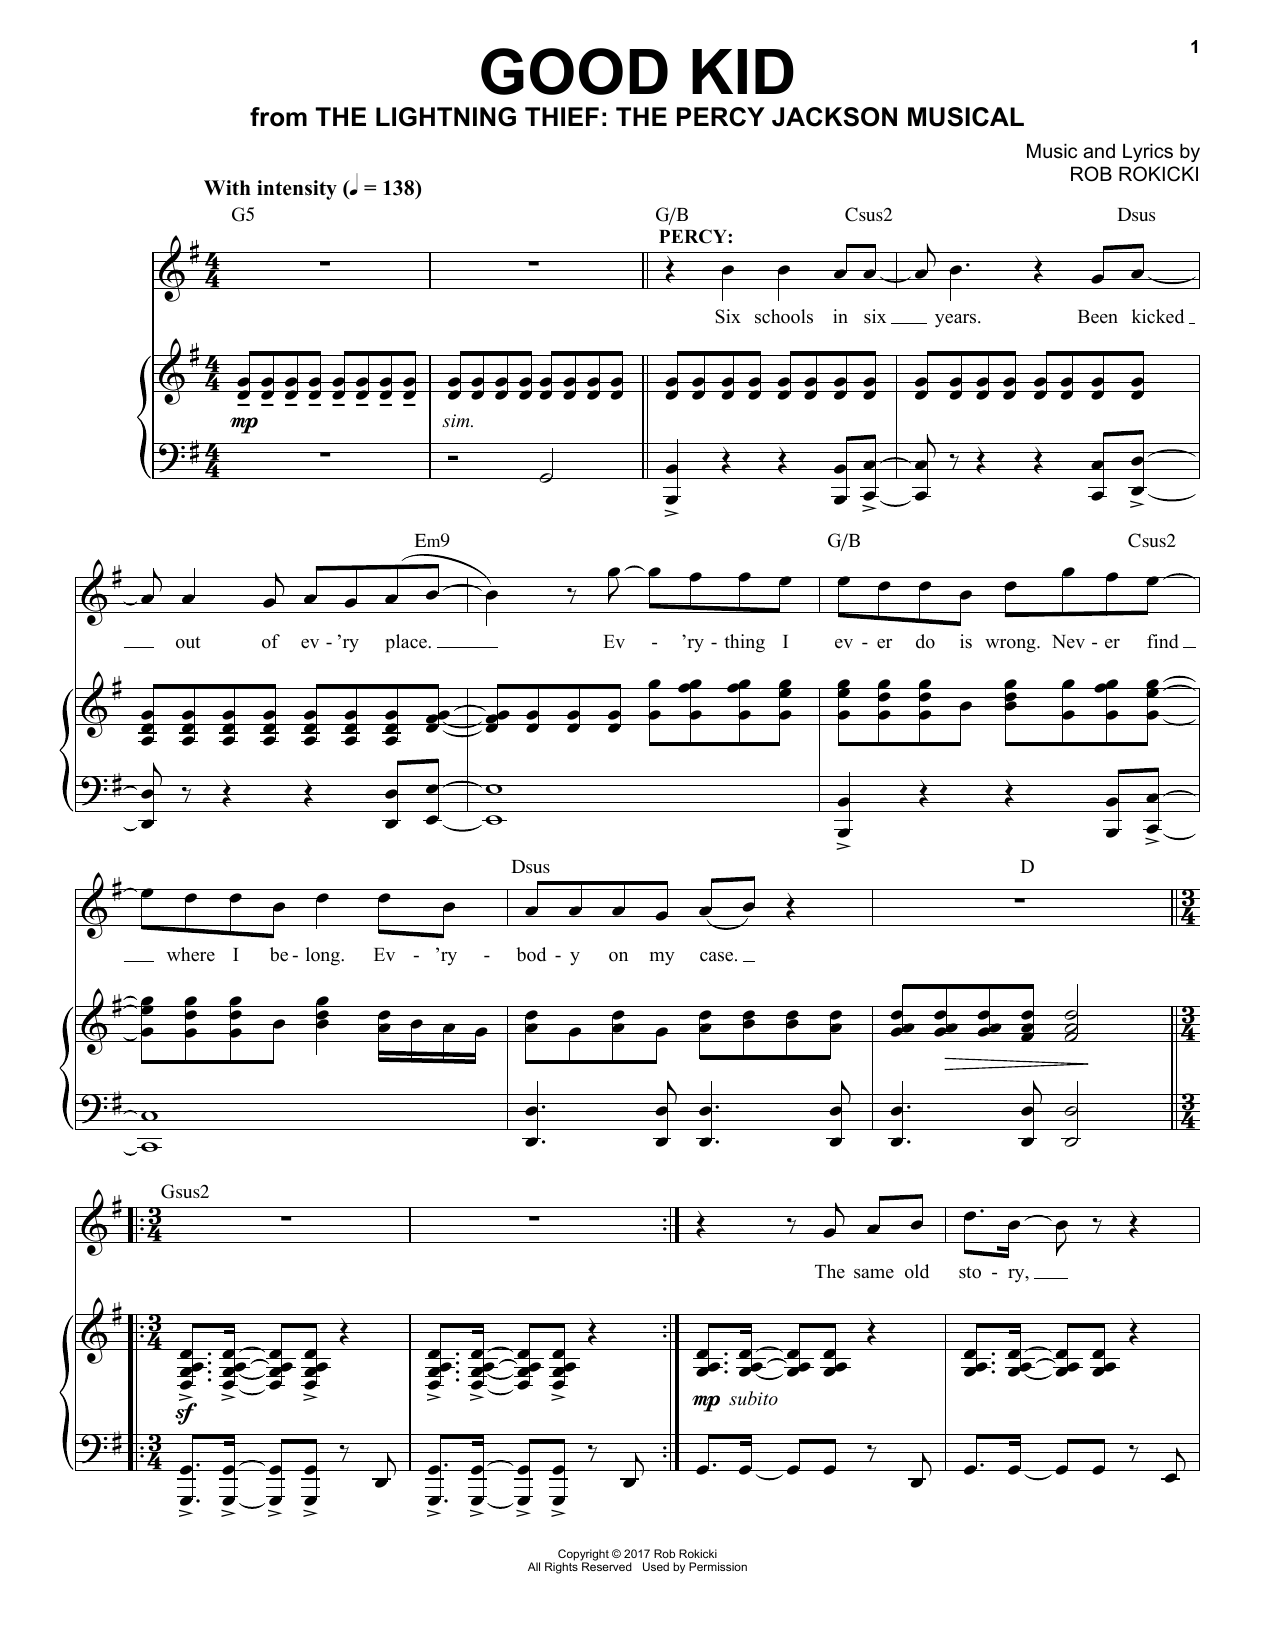 Rob Rokicki Good Kid (from The Lightning Thief: The Percy Jackson Musical) sheet music notes and chords. Download Printable PDF.